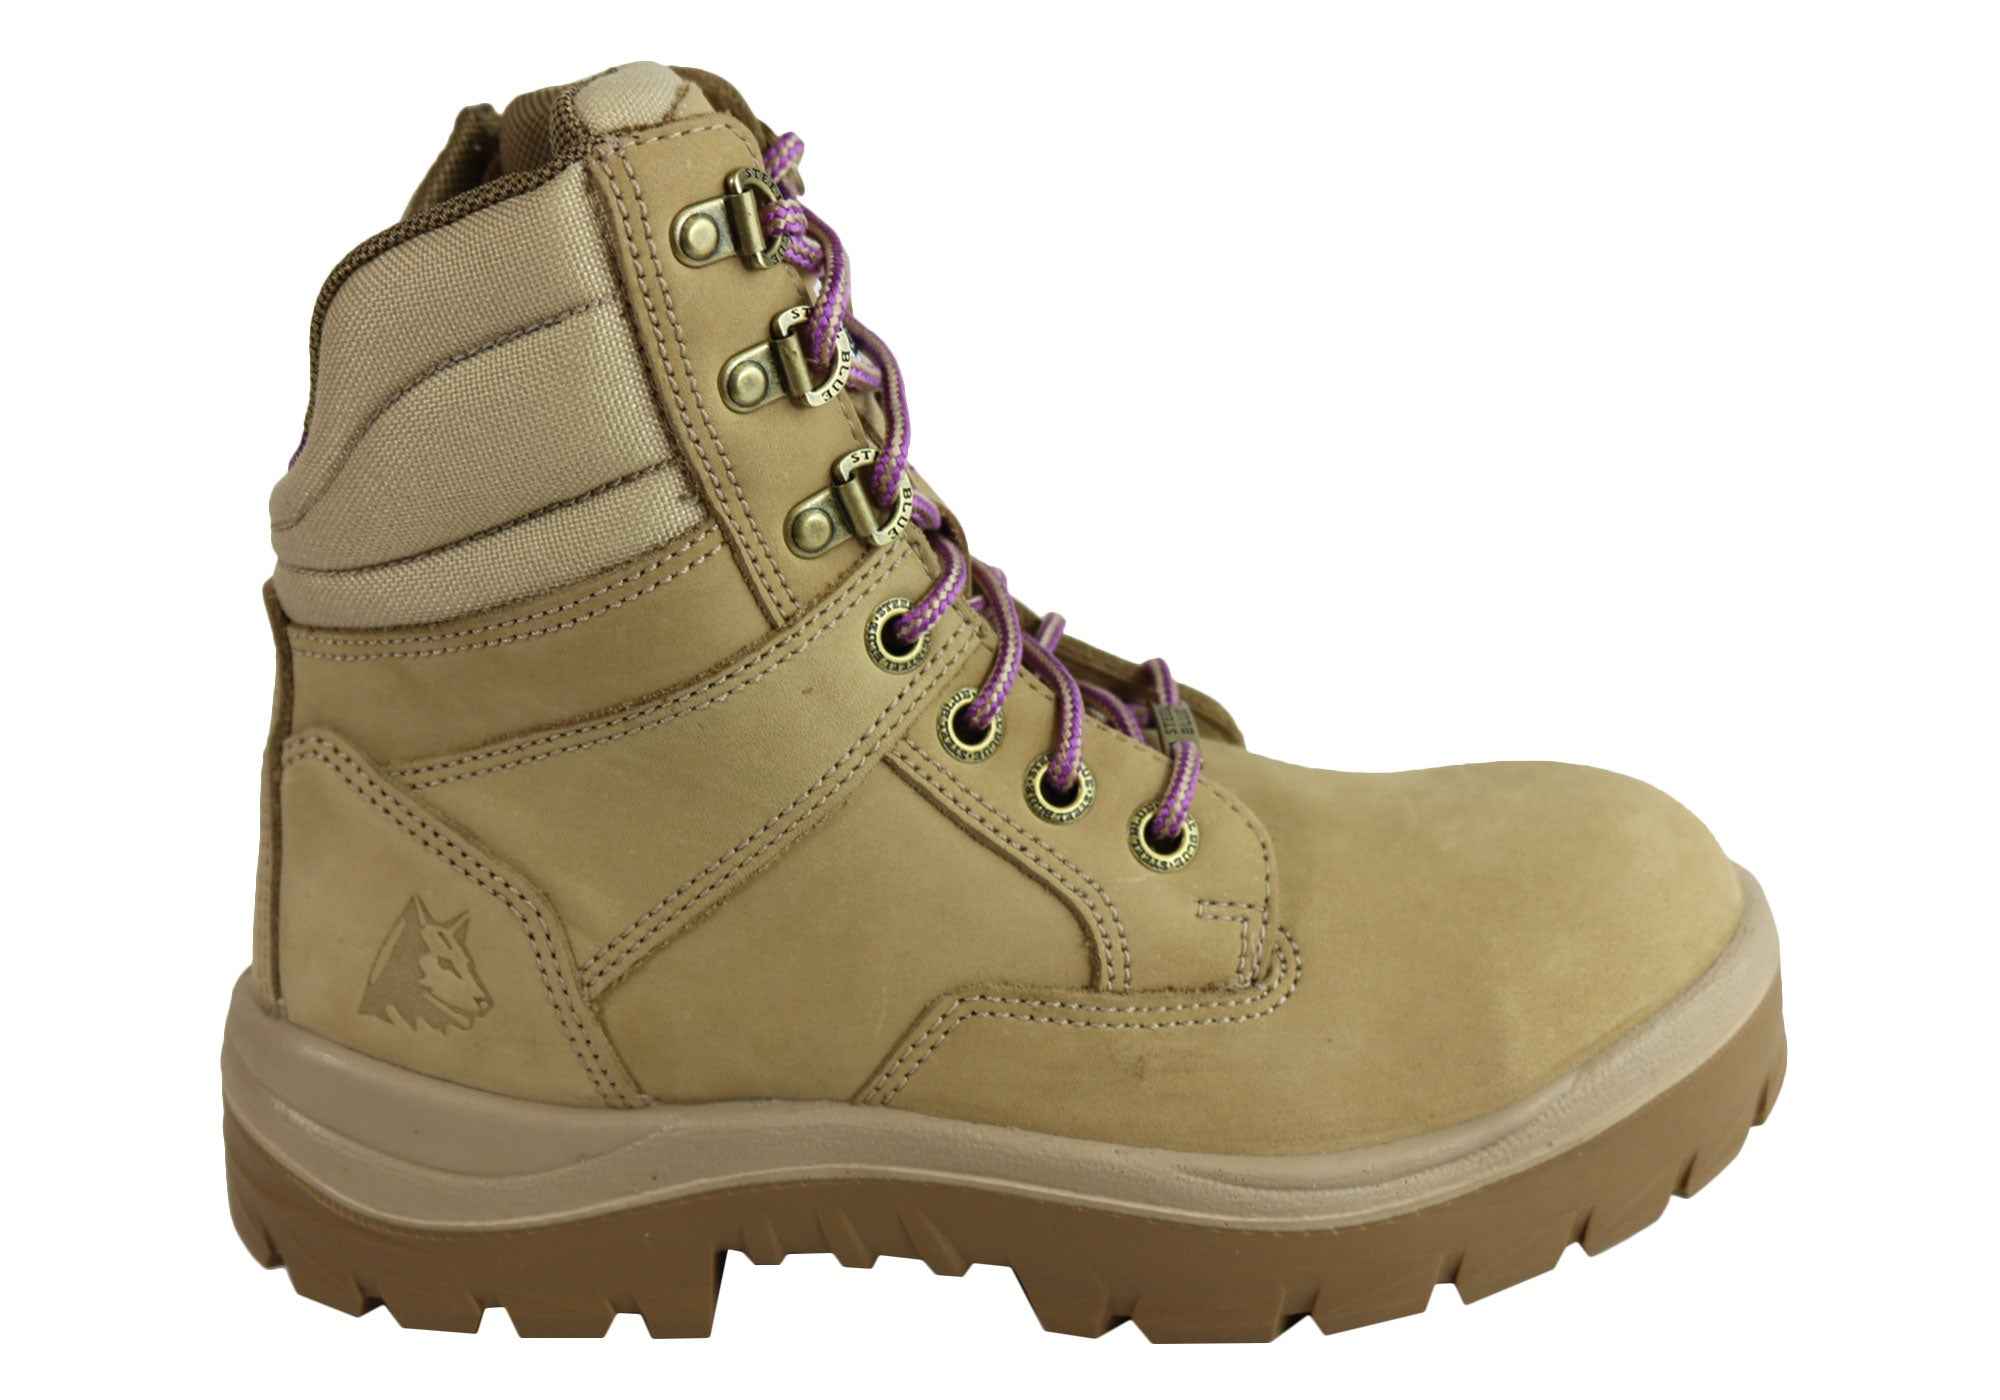 running shoes reliable reputation cheap Details about NEW STEEL BLUE WOMENS 522760 & 522761 SOUTHERN CROSS STEEL  TOE WORK BOOTS